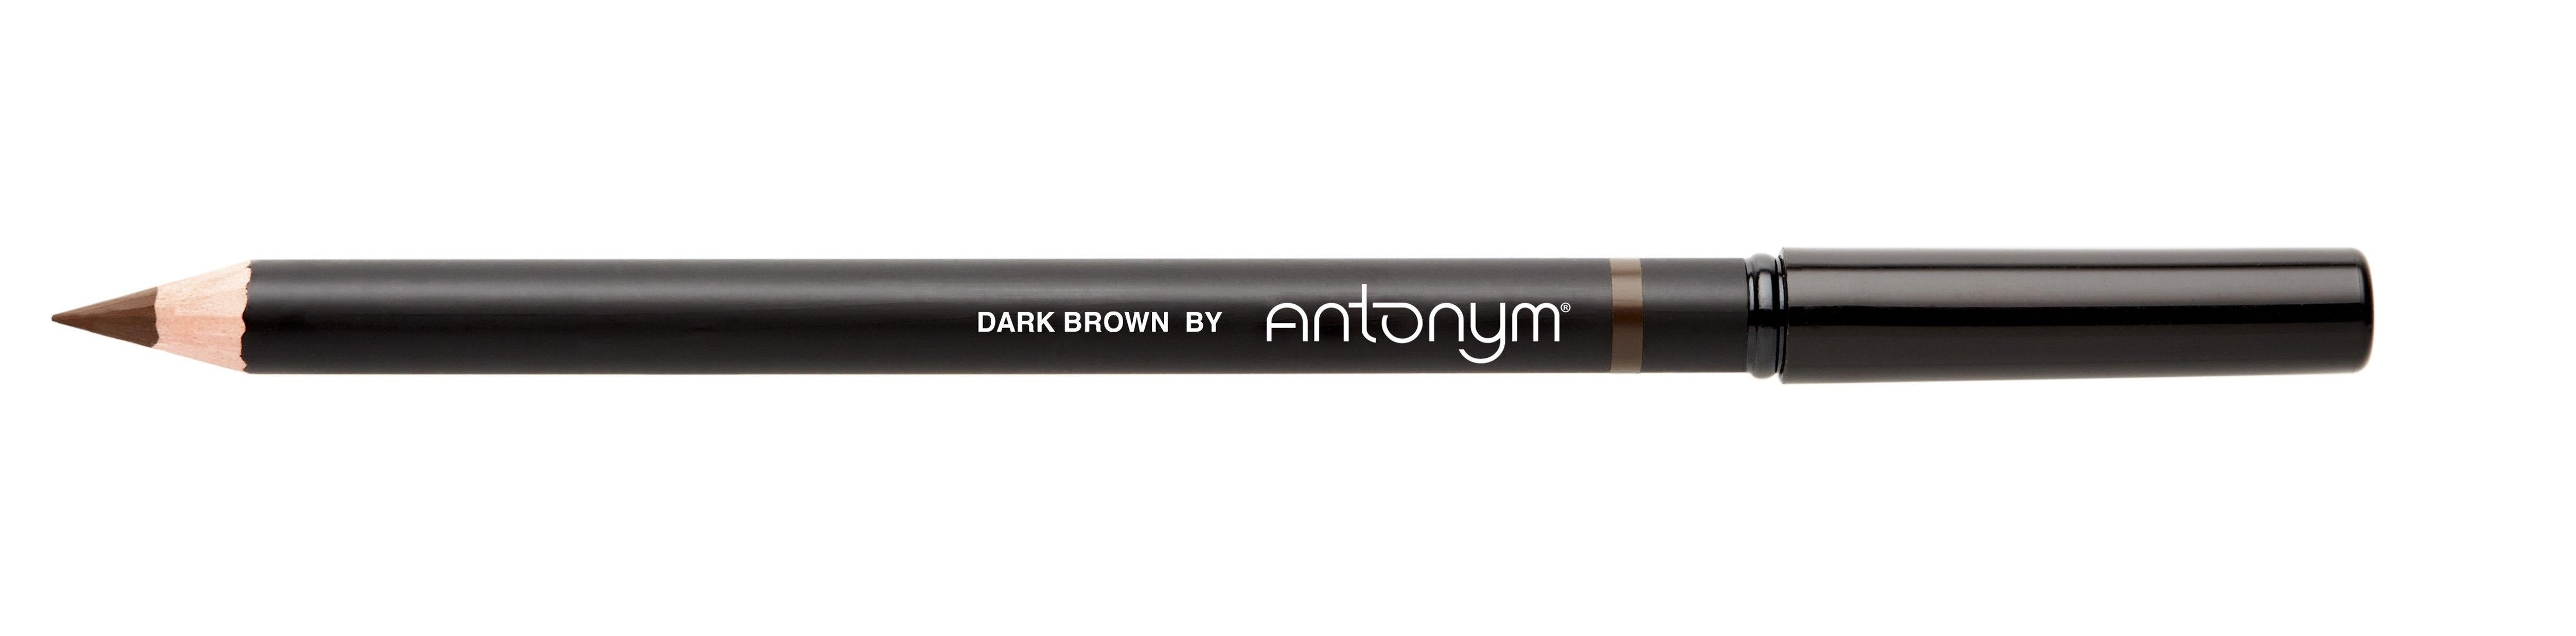 Certified Natural Eyebrow Pencil in Dark Brown